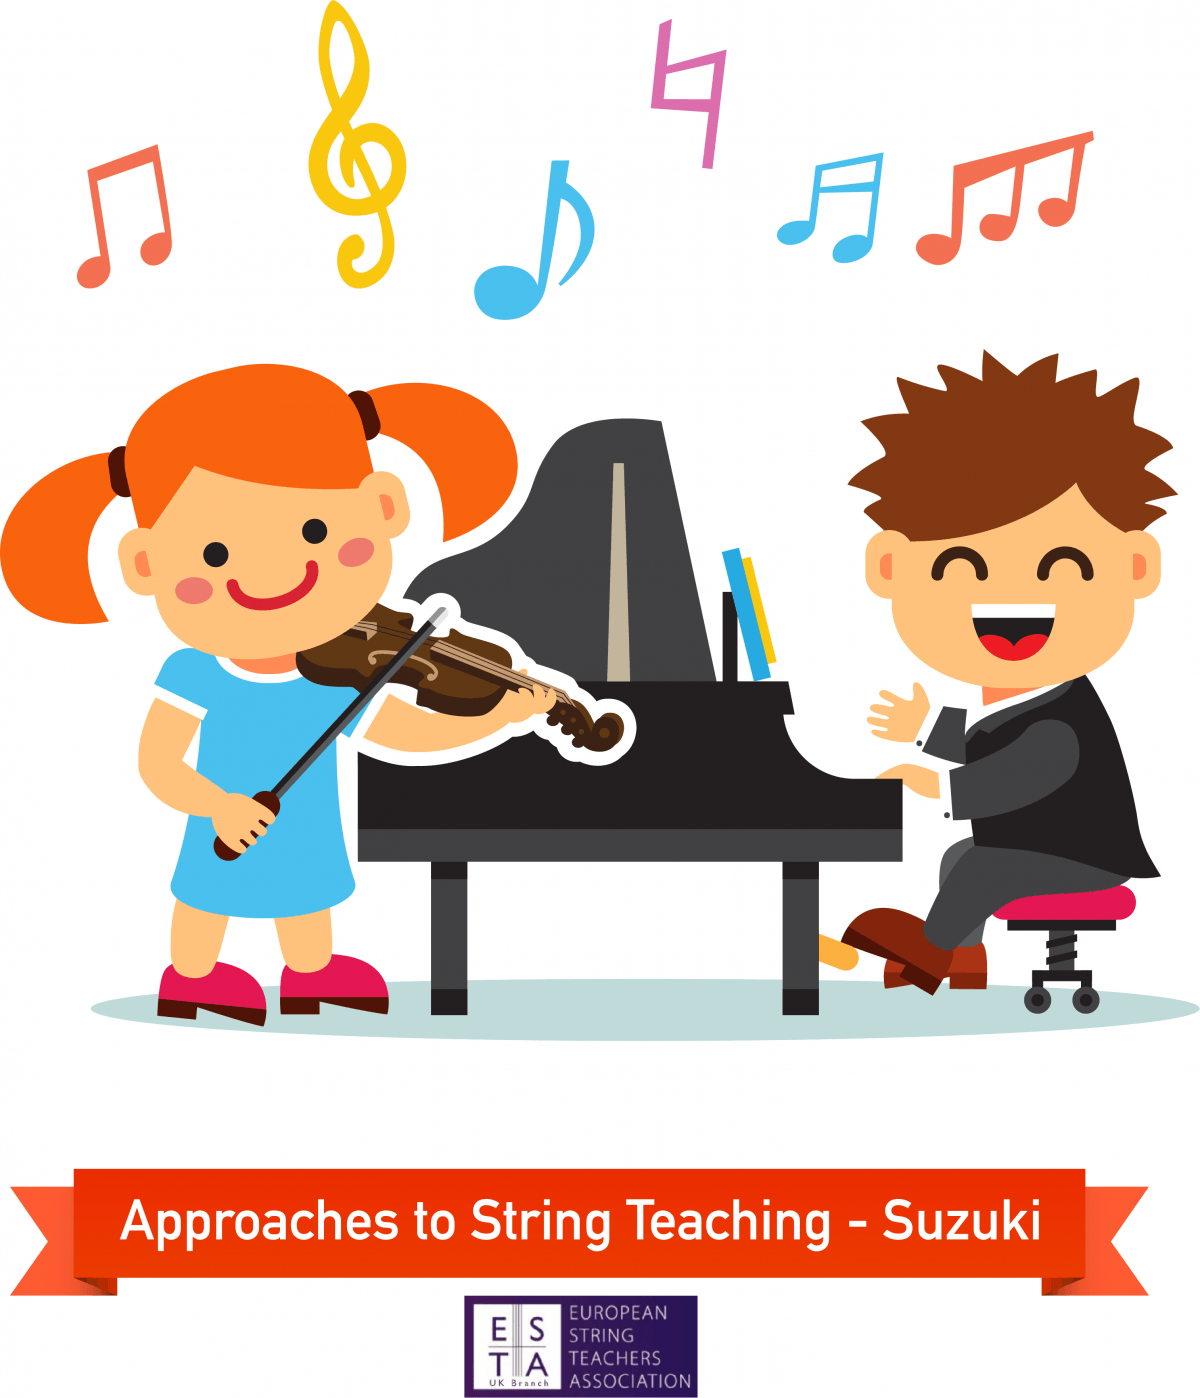 Approaches to String Teaching - Suzuki